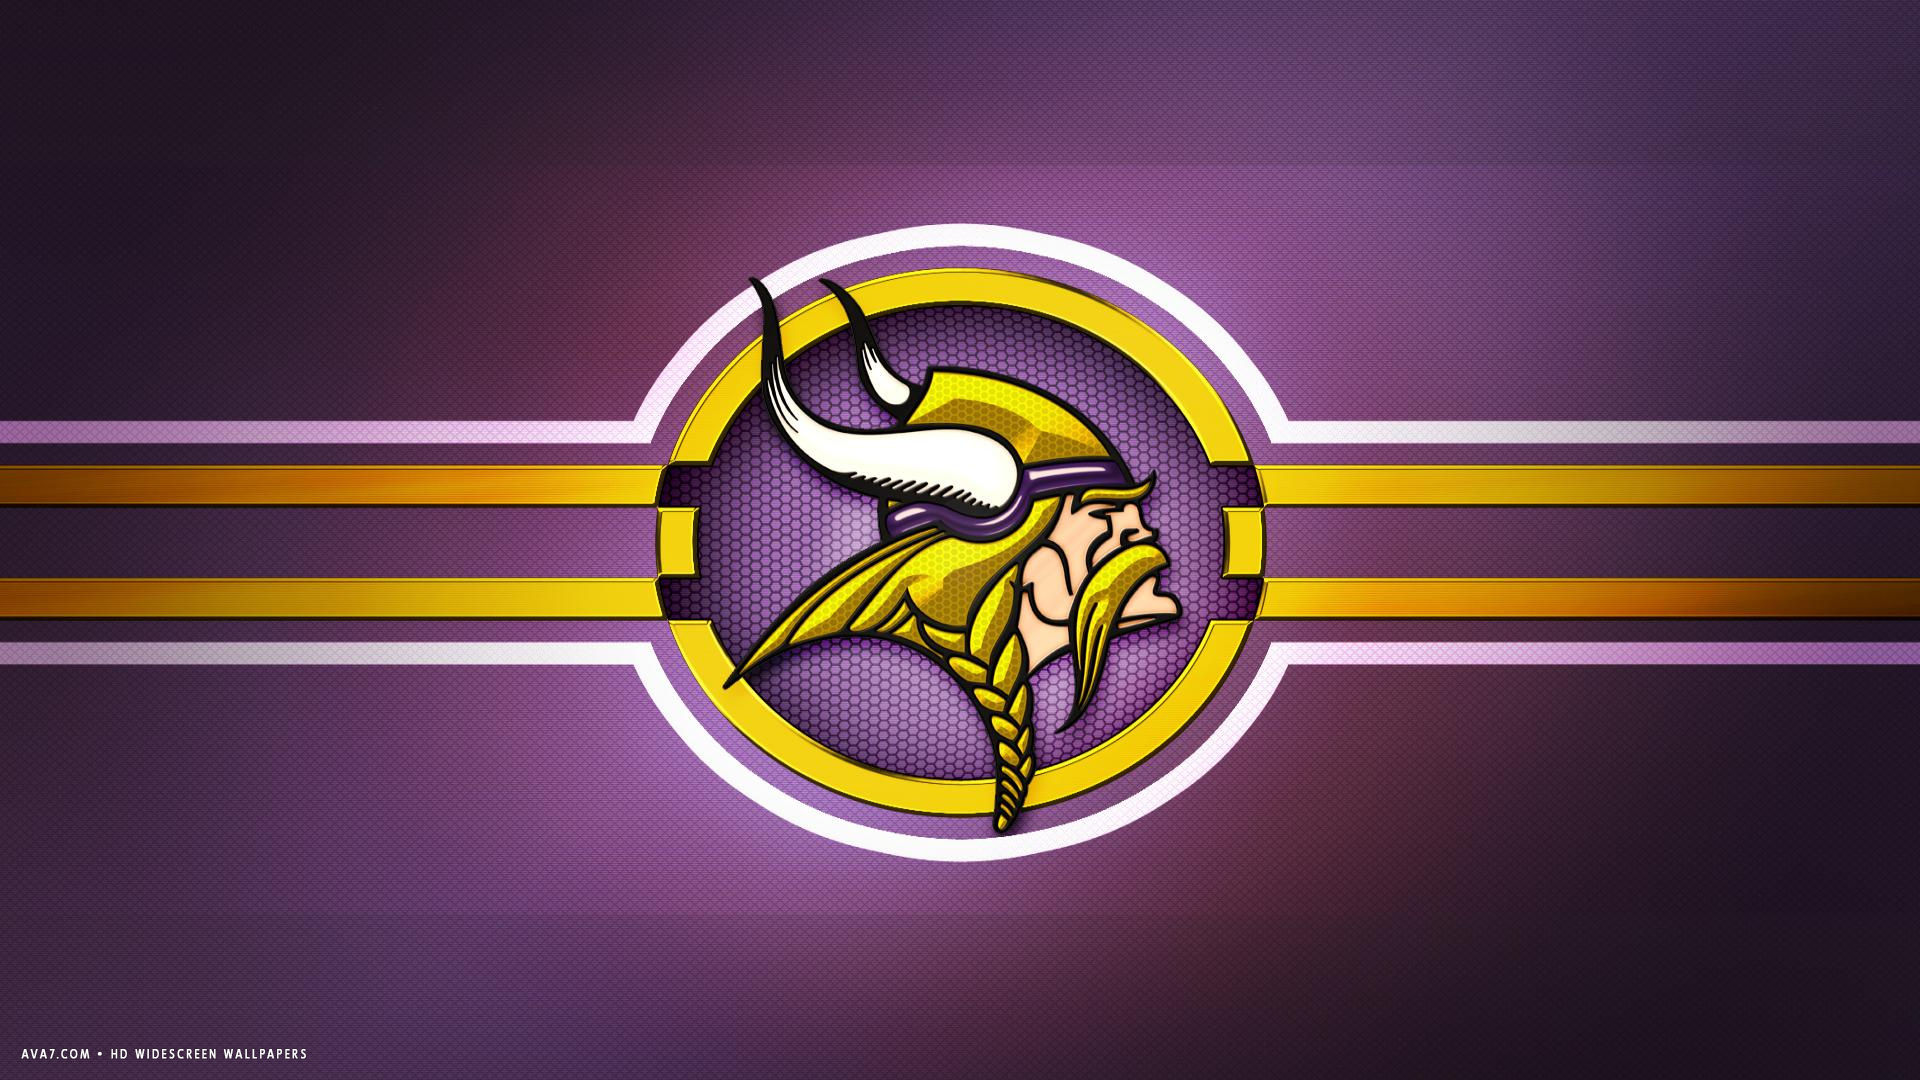 Hd 3d Wallpapers For Computer Minnesota Vikings Wallpaper 1920x1080 Hd Widescreen